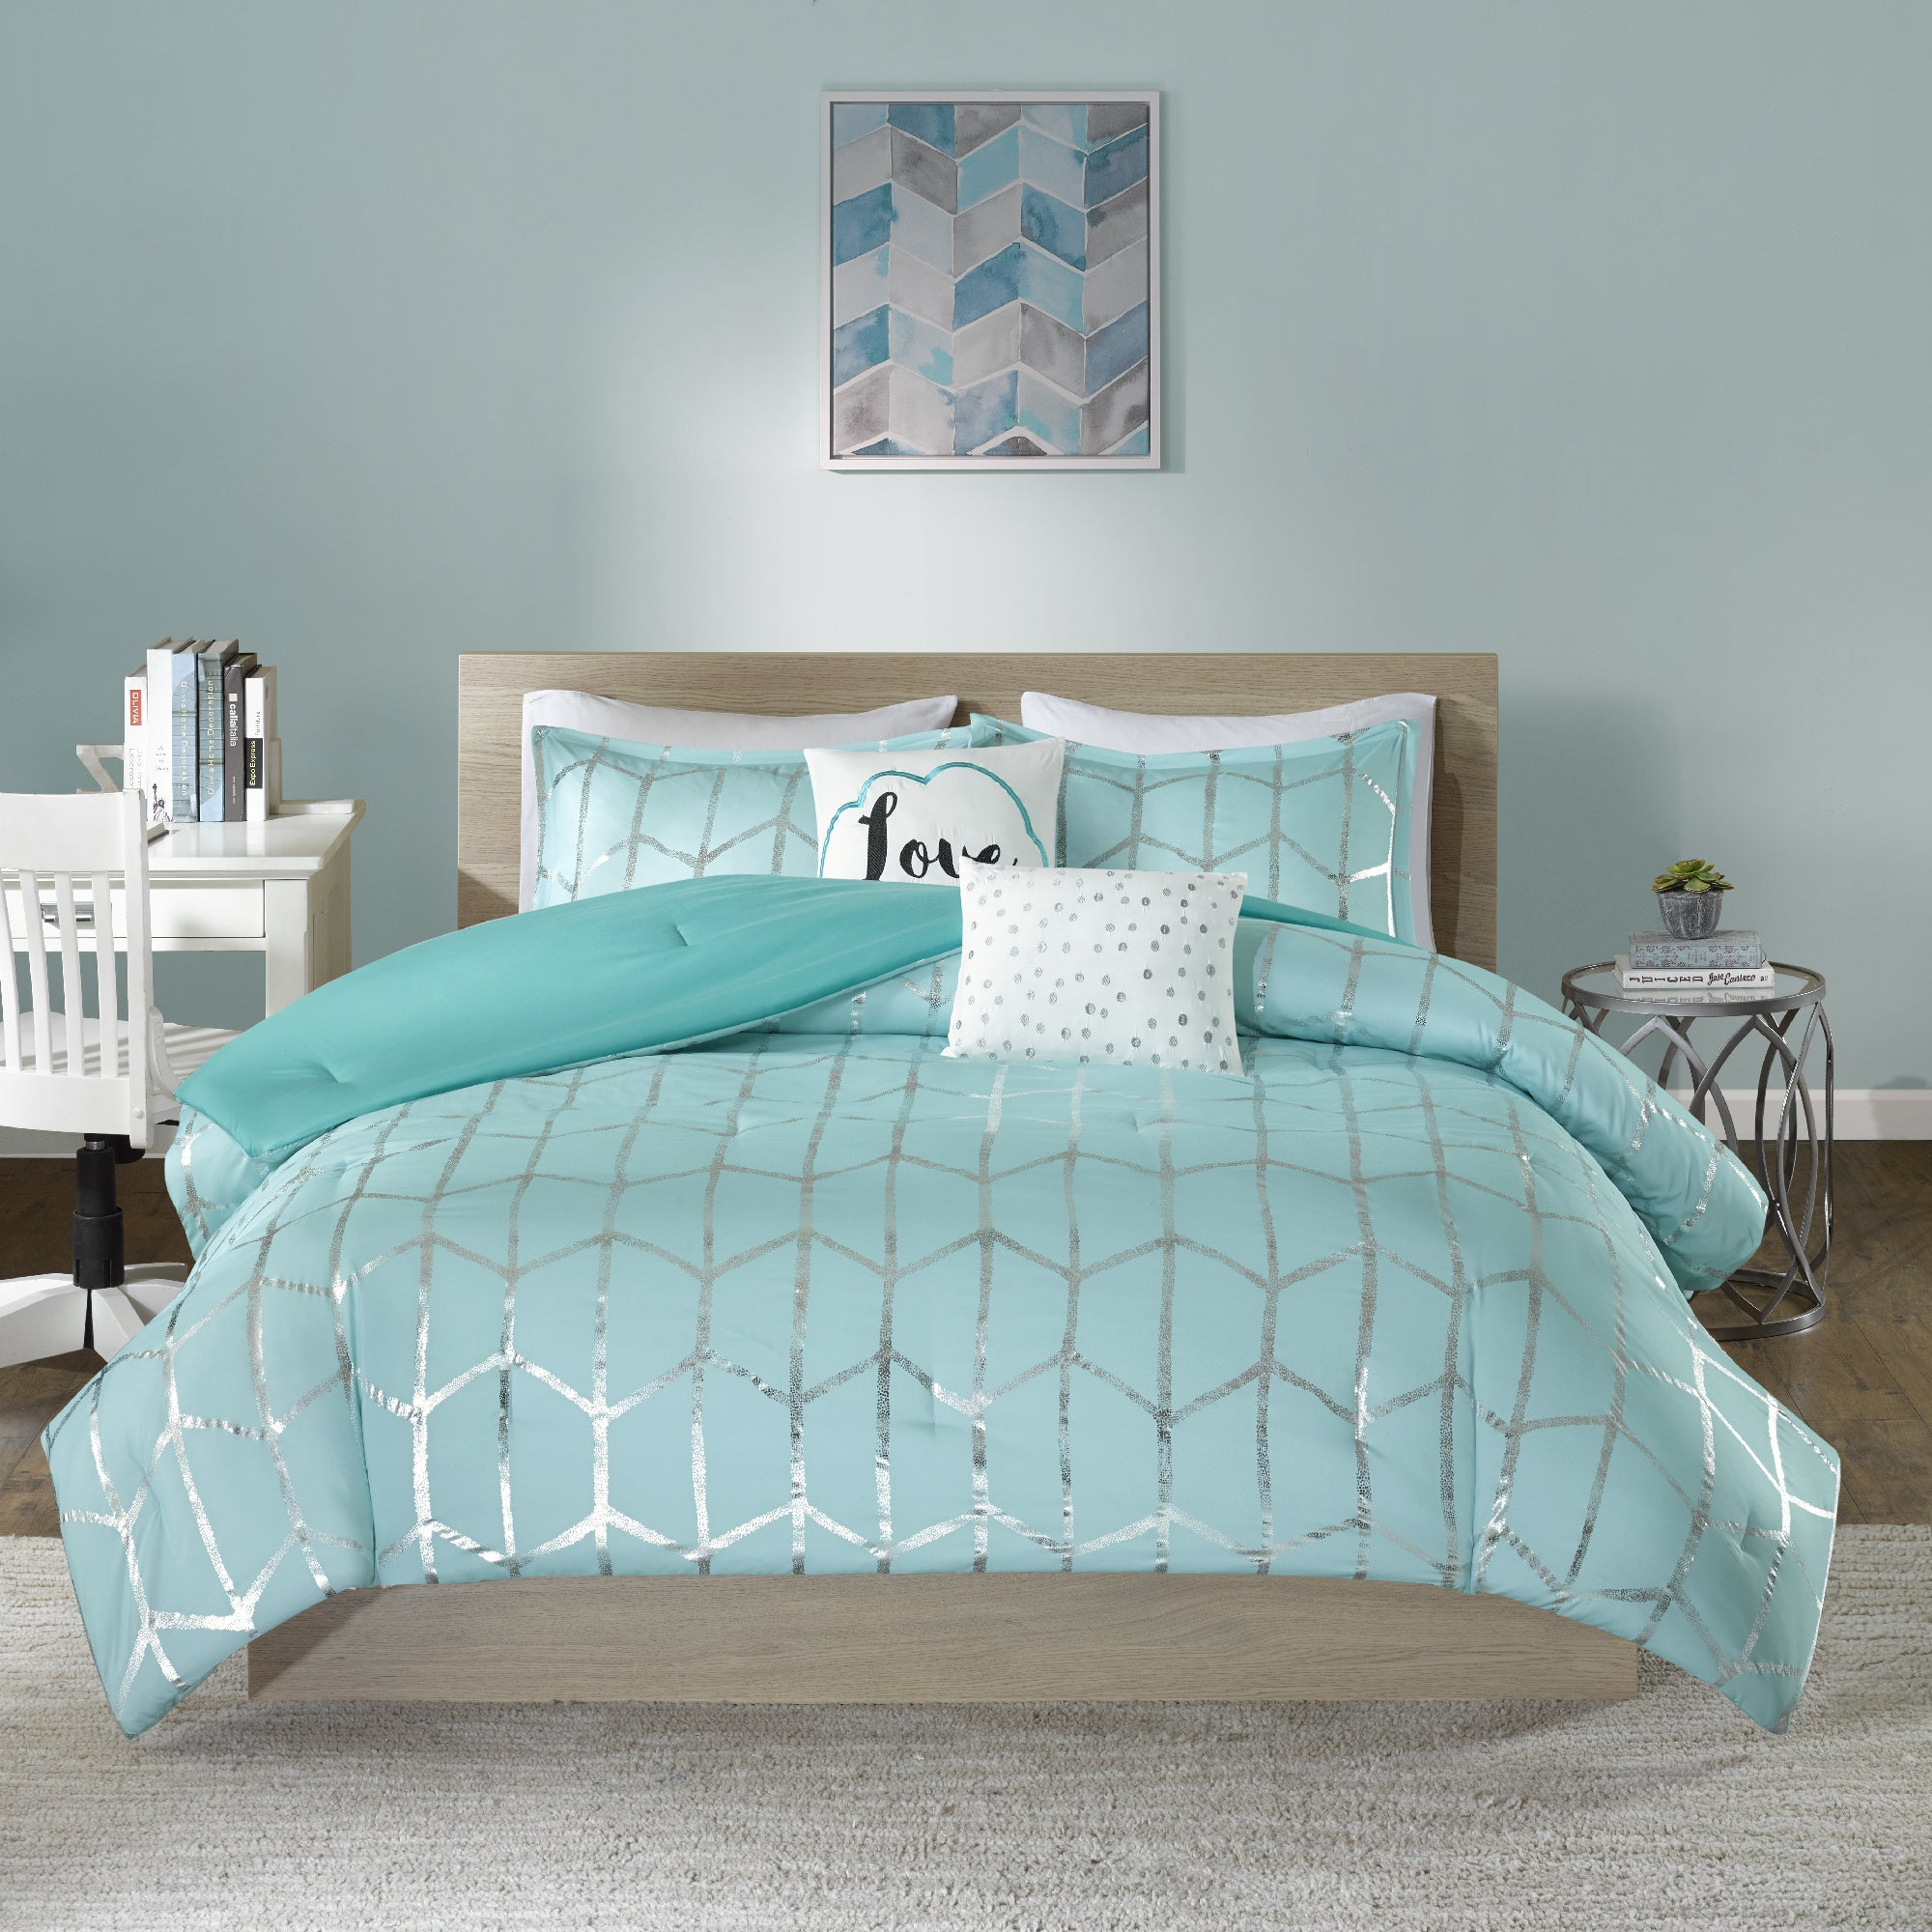 comforter supreme dreamy upscale nautical sets queen decor silver and using target bedspreads bedding comforters set beach in also reversible touch class trusty trellis